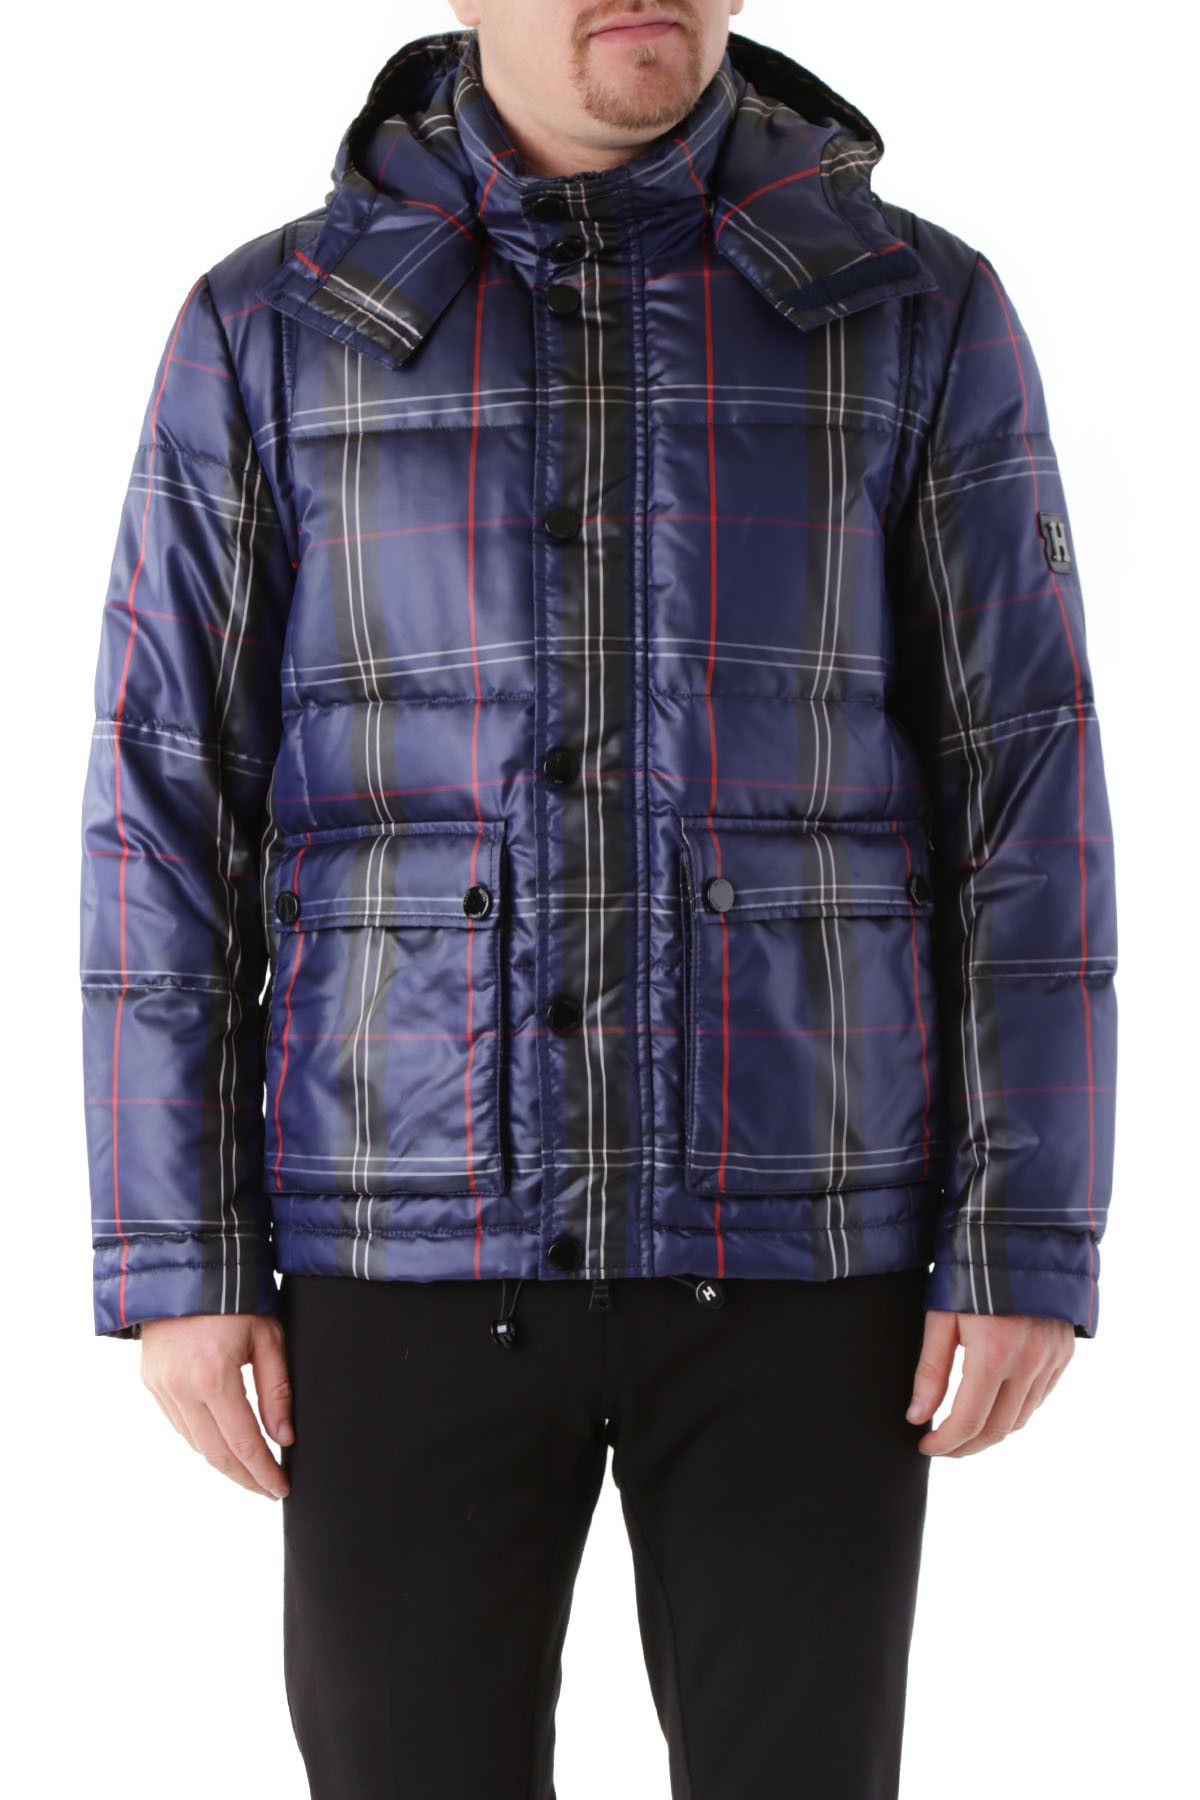 Husky Men's Jacket In Blue